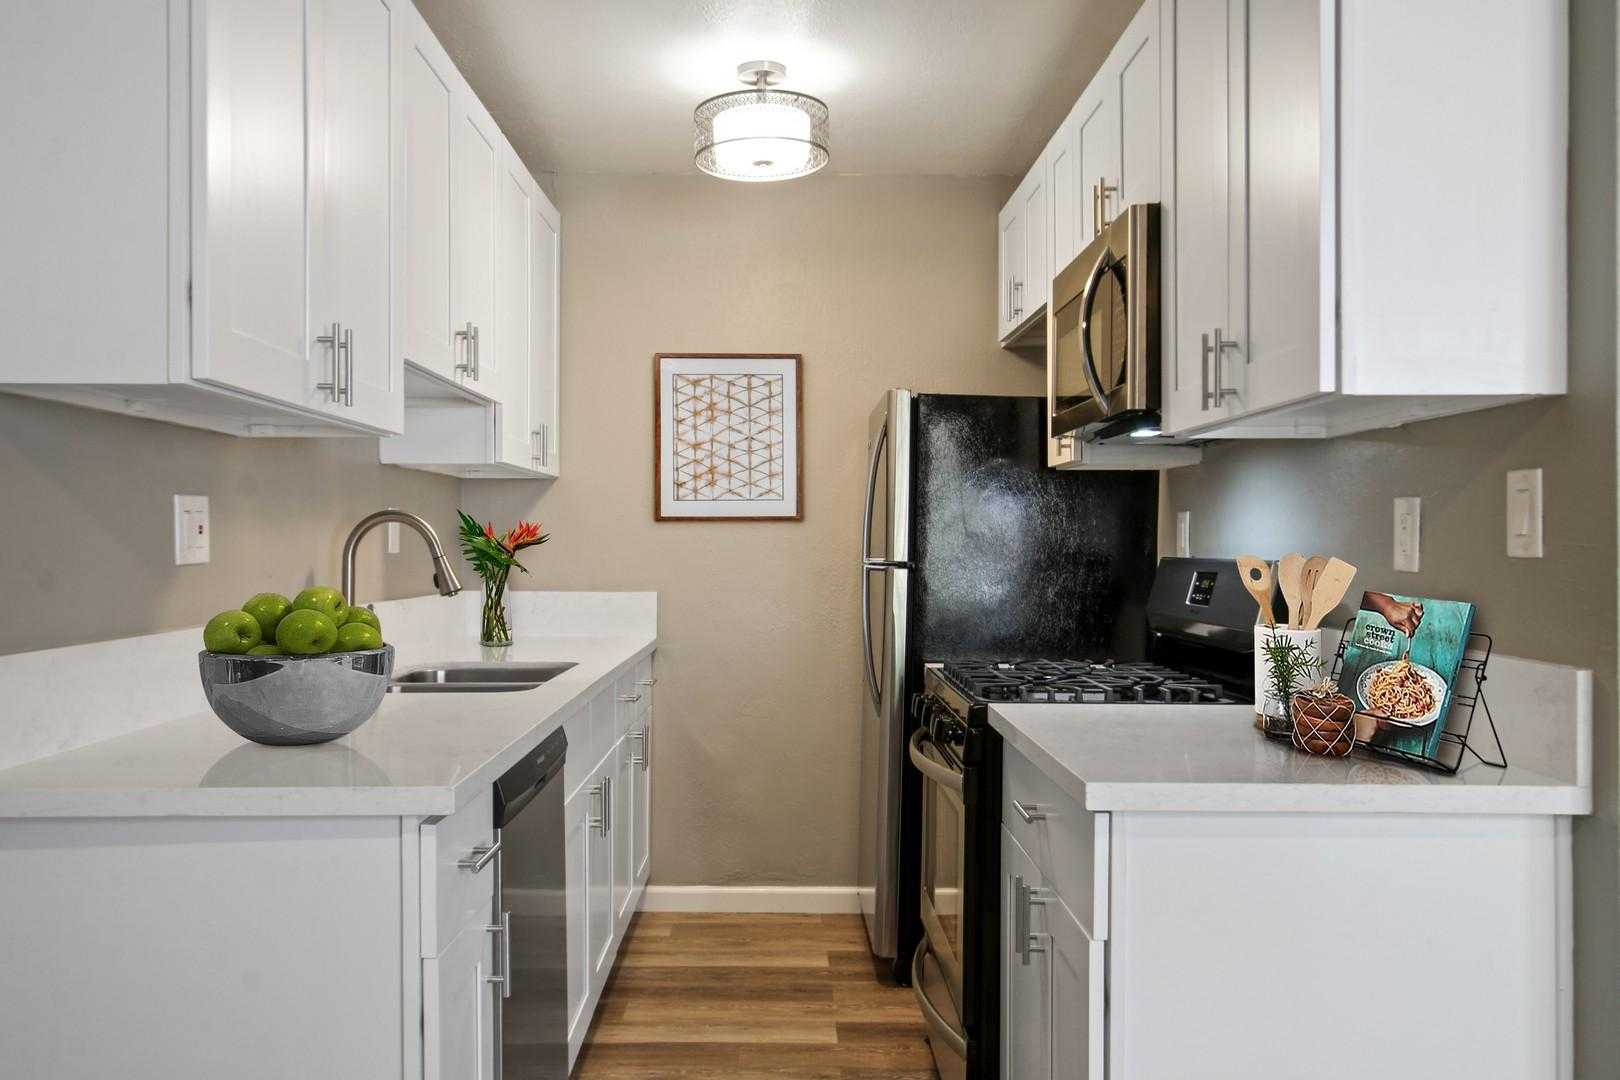 232-236 3rd Ave #2B, Los Angeles, CA - 2,475 USD/ month